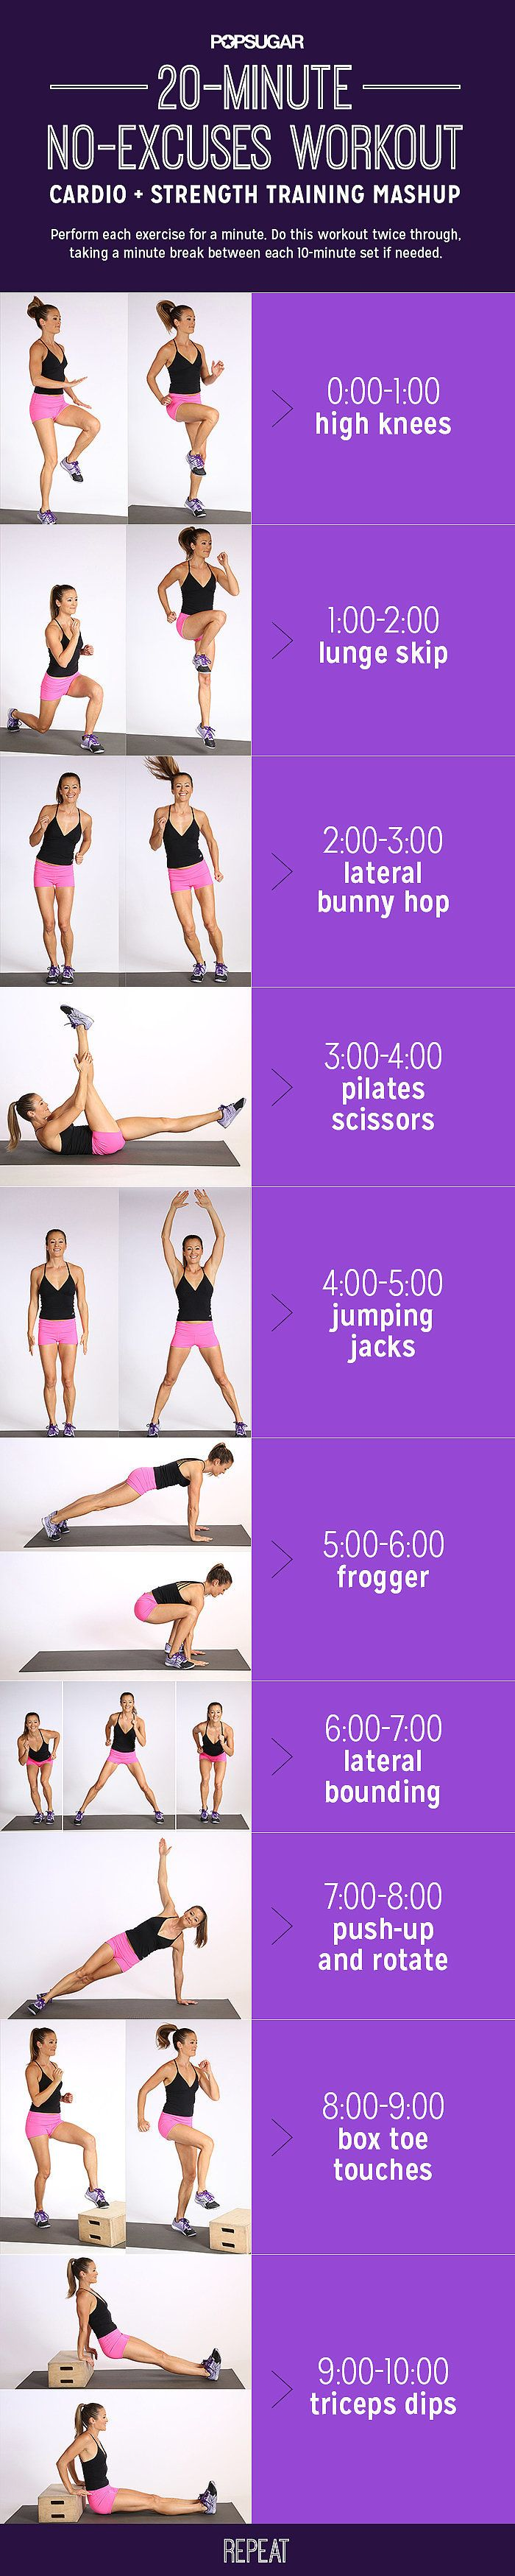 It doesn't get simpler than this. A 20-minute that requires no equipment whatsoever. It also combines cardio with strength training meaning your done and done!